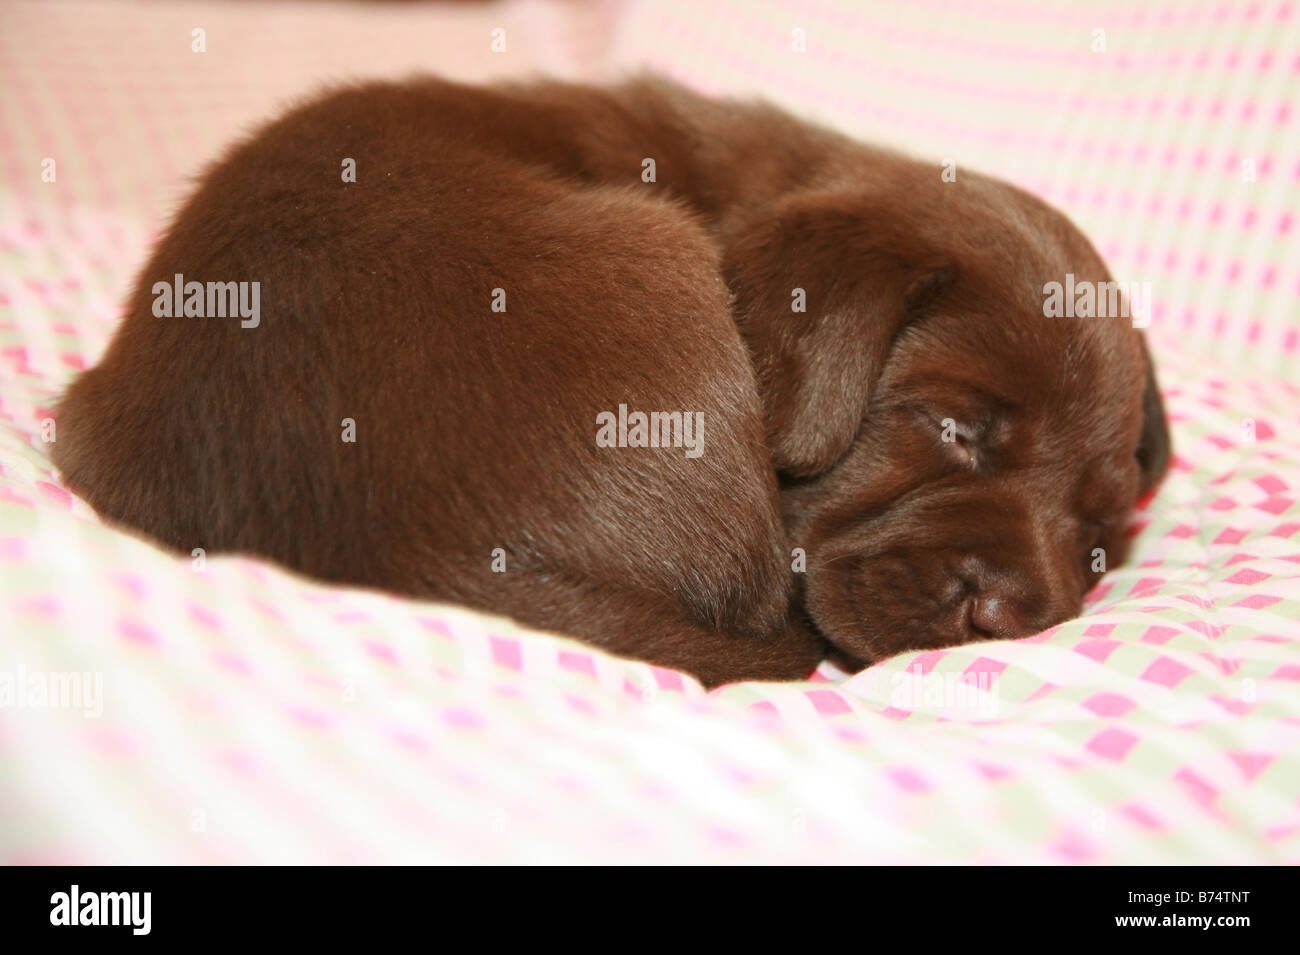 Chocolate Labrador puppy sleeping - Stock Image